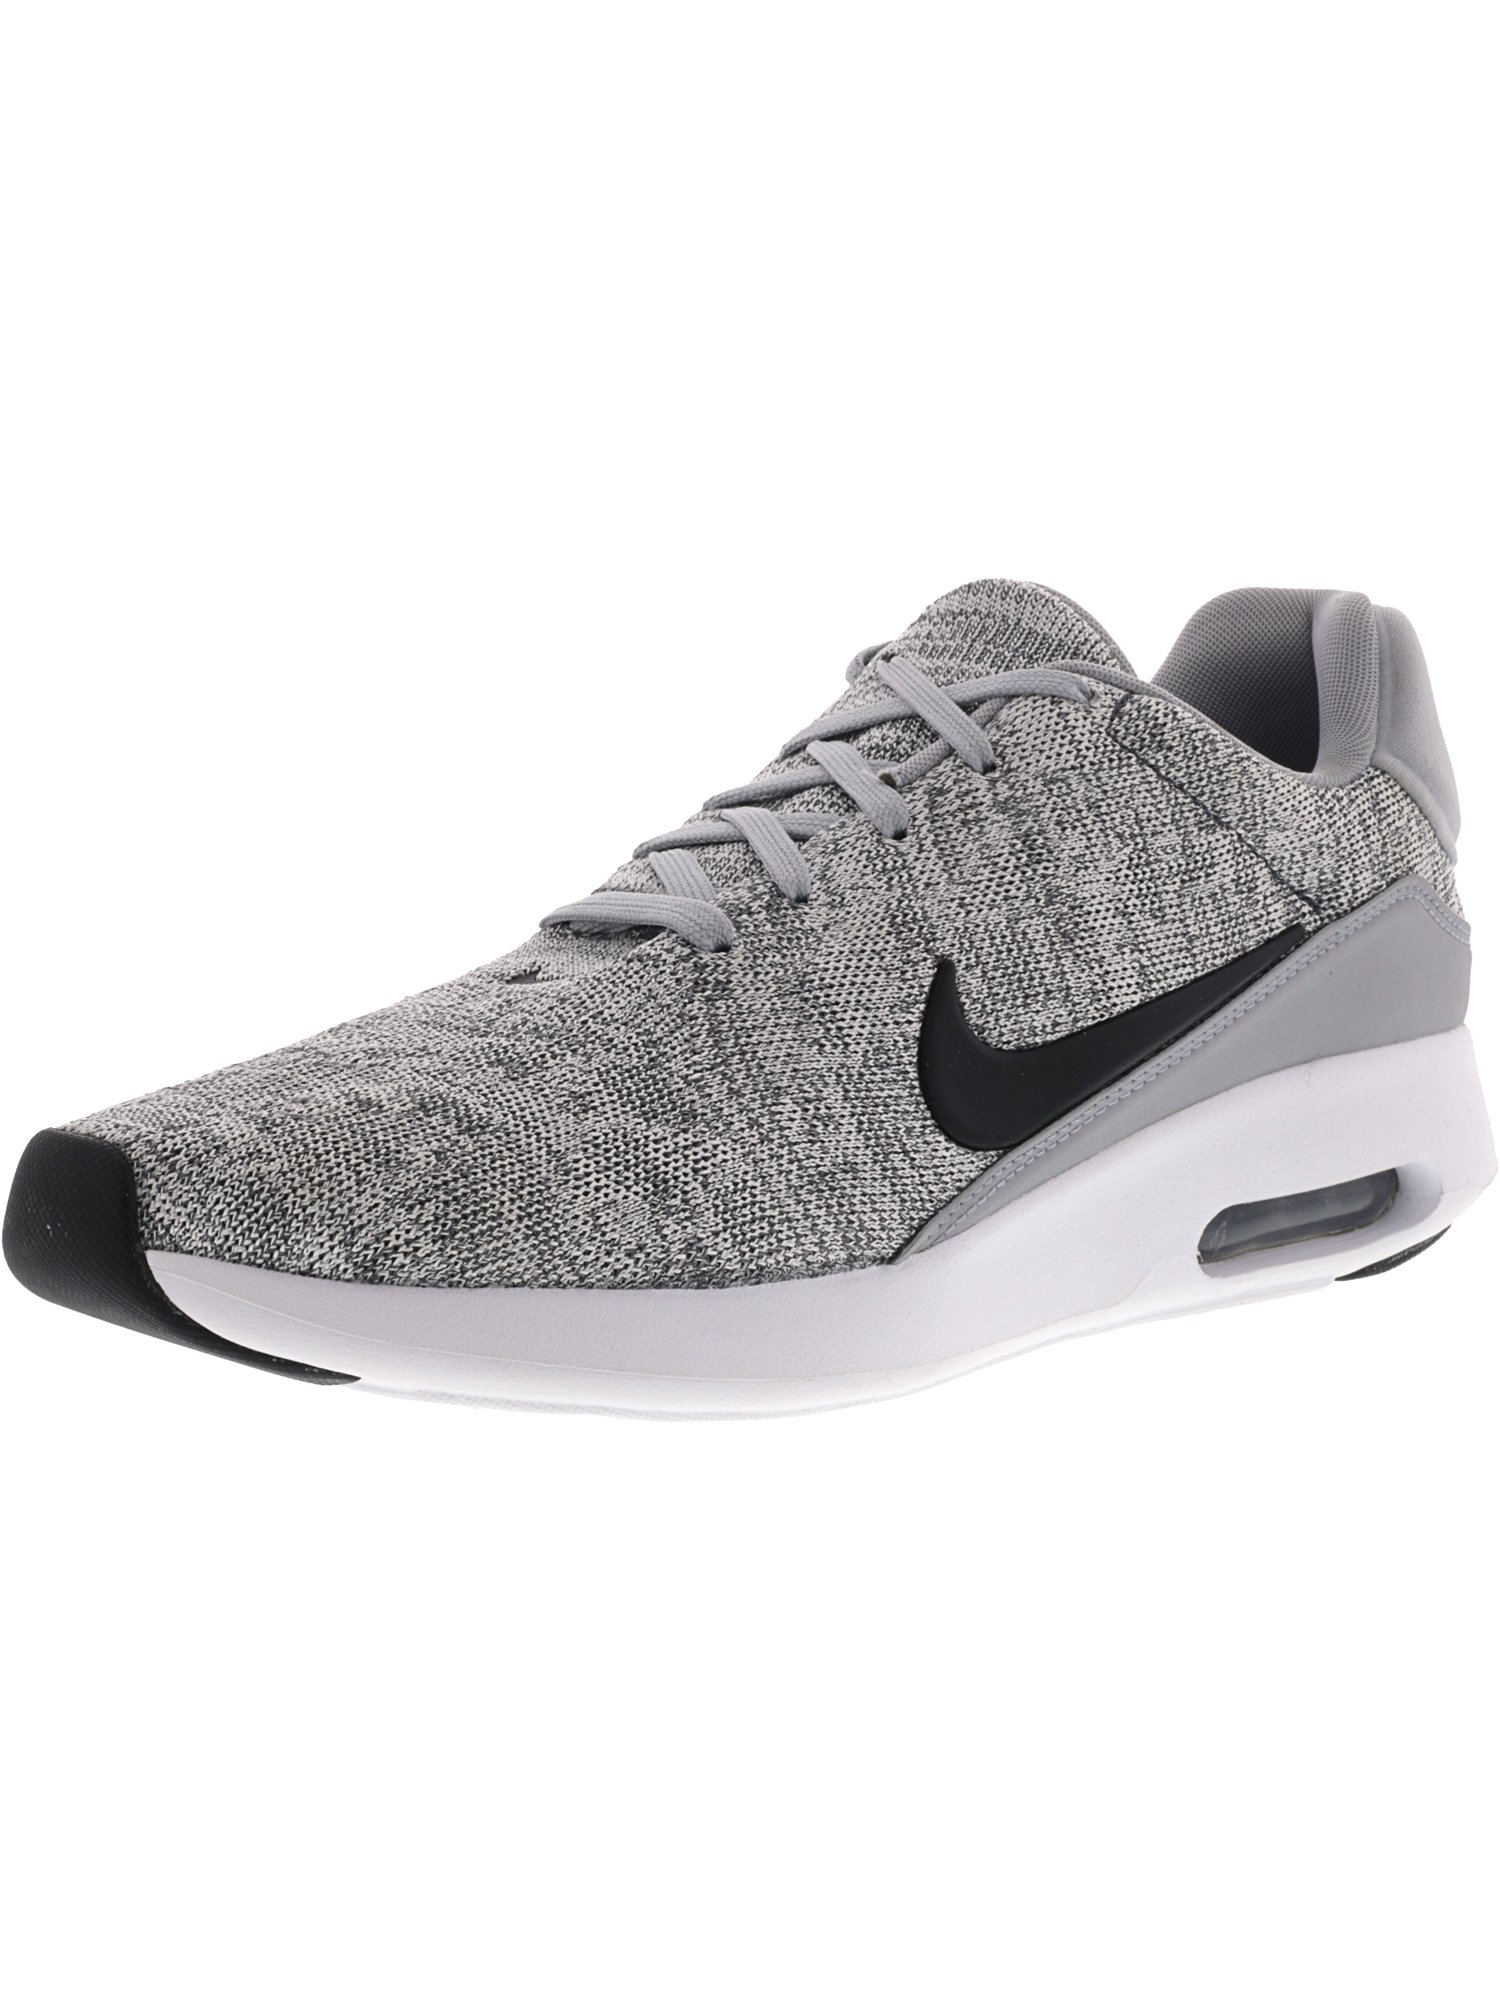 7e751feaf7da ... buy nike nike mens air max modern flyknit wolf grey black white ankle  high fabric running